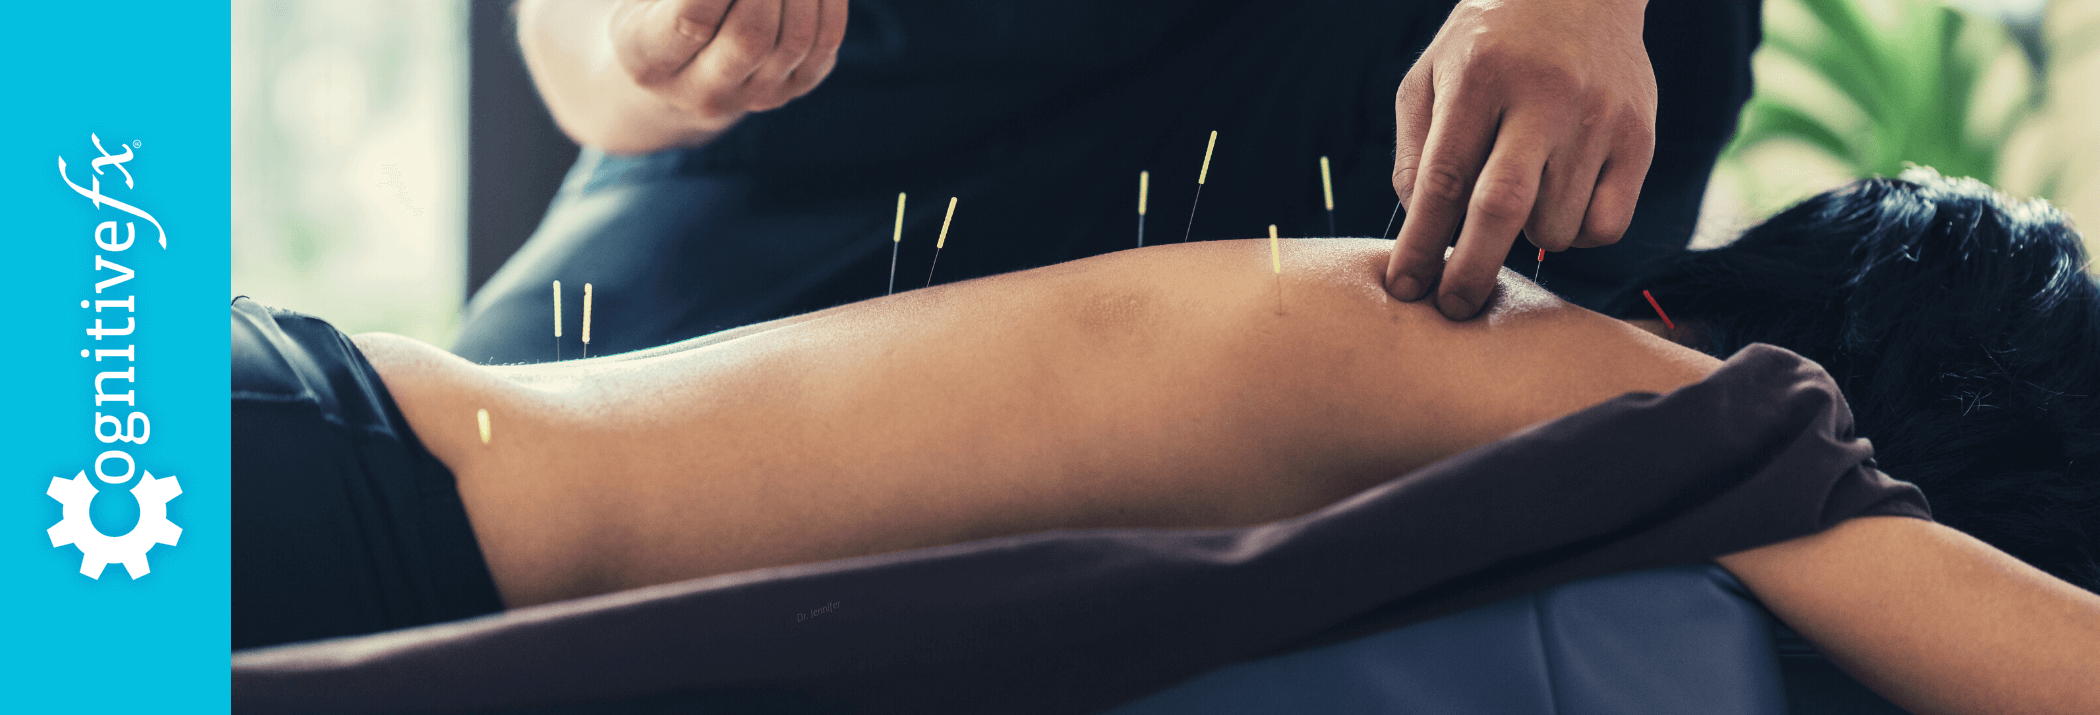 Dry Needling and Acupuncture for Concussion: Can They Relieve Your Symptoms?